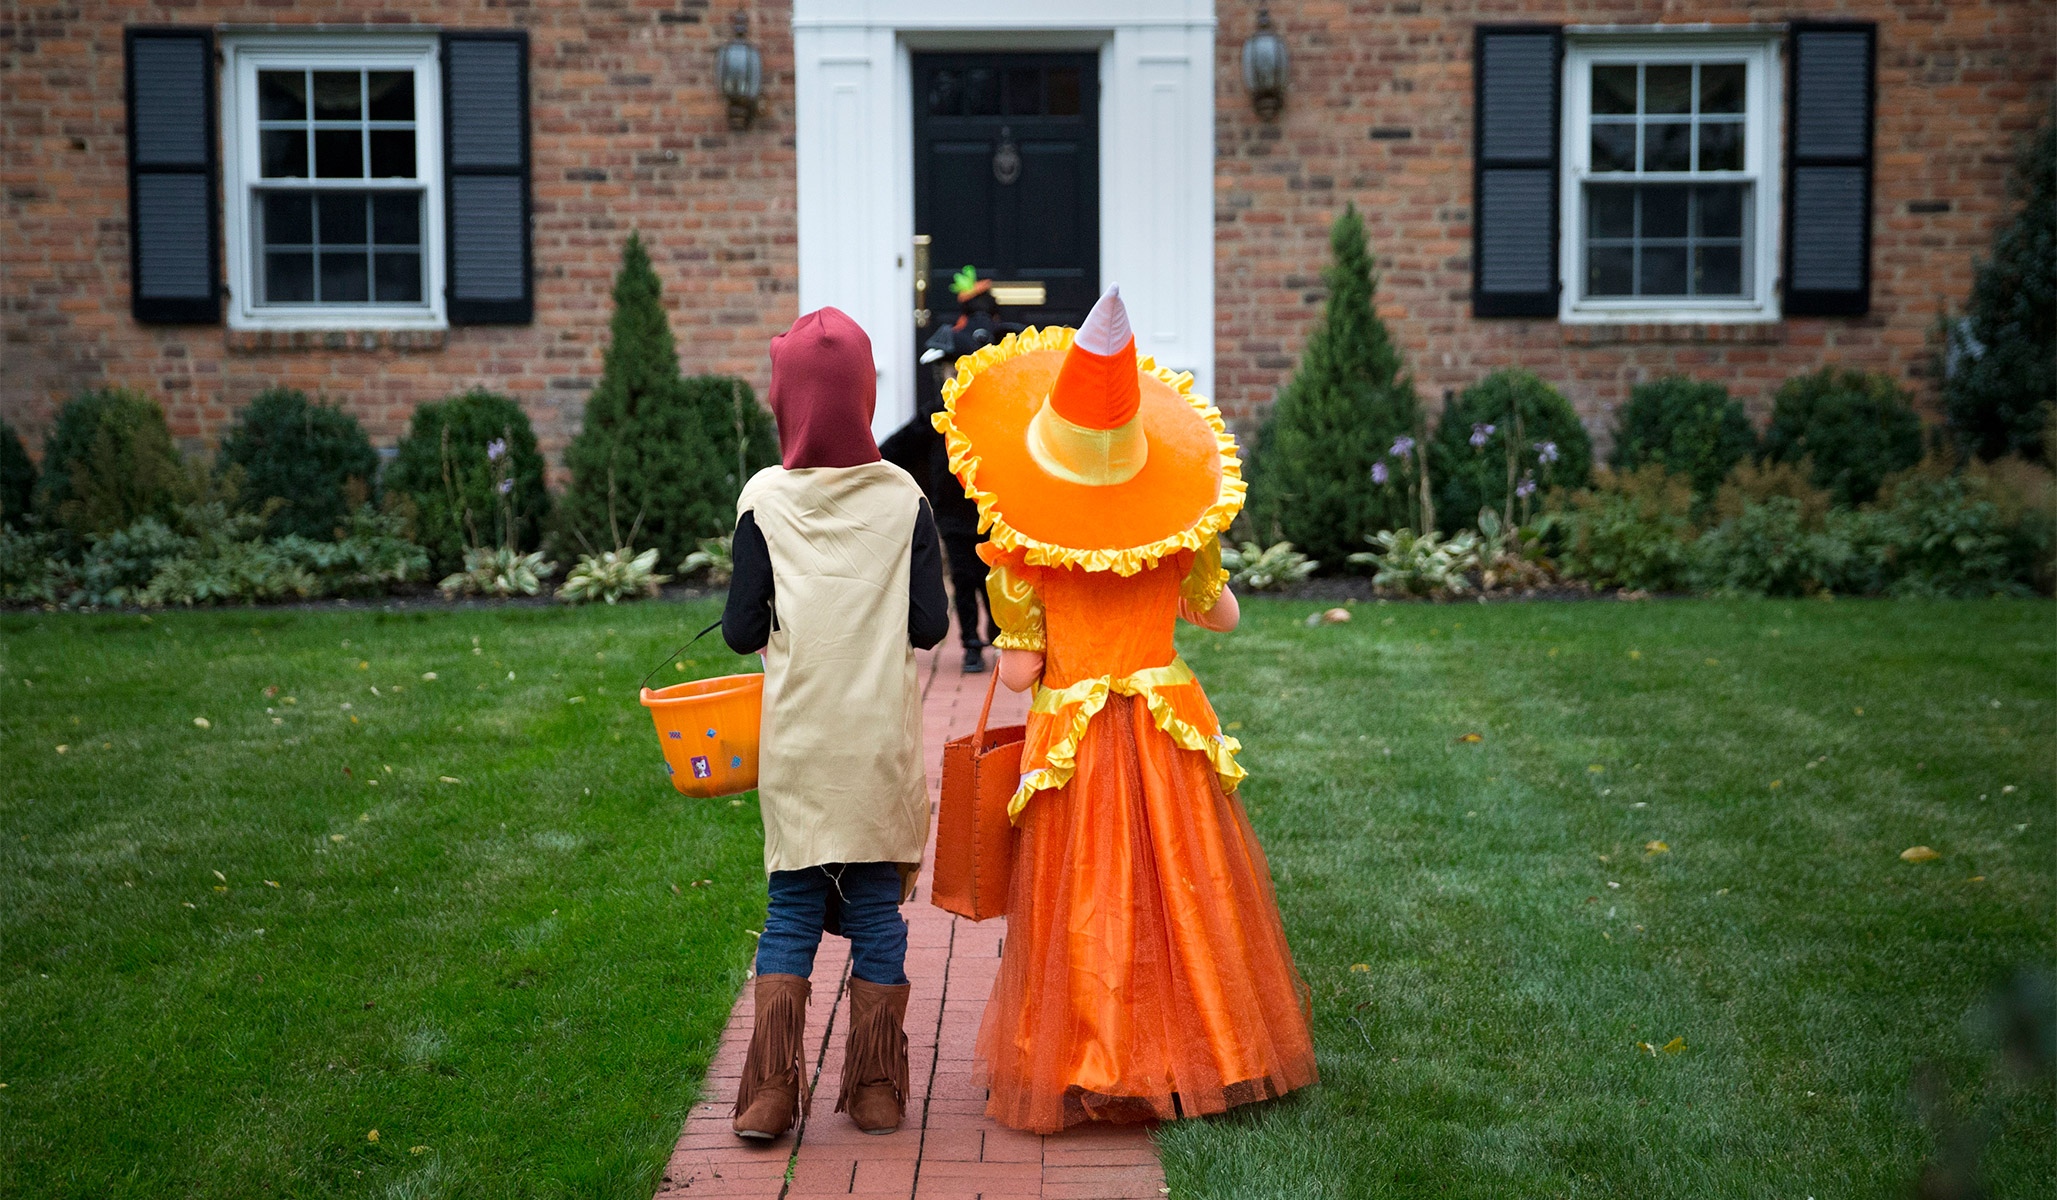 13-Year-Olds Can Again Be Jailed for Trick-or-Treating